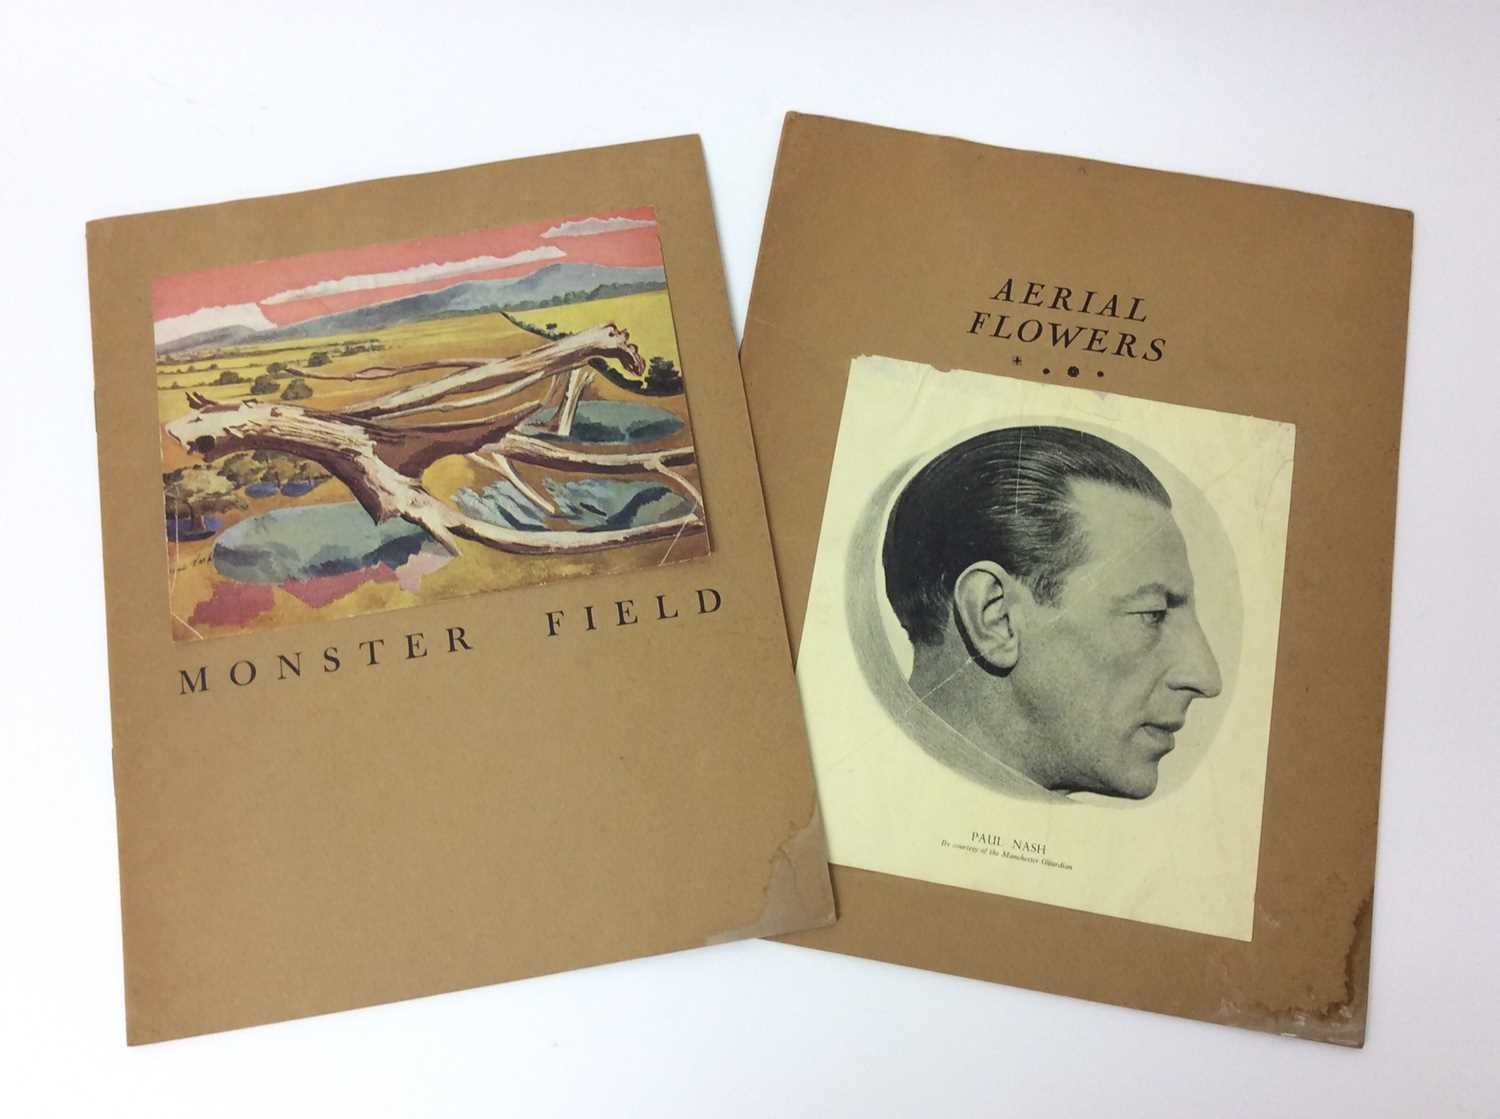 Paul Nash, Monster Field, limited to an edition of 1000, together with Aerial Flowers